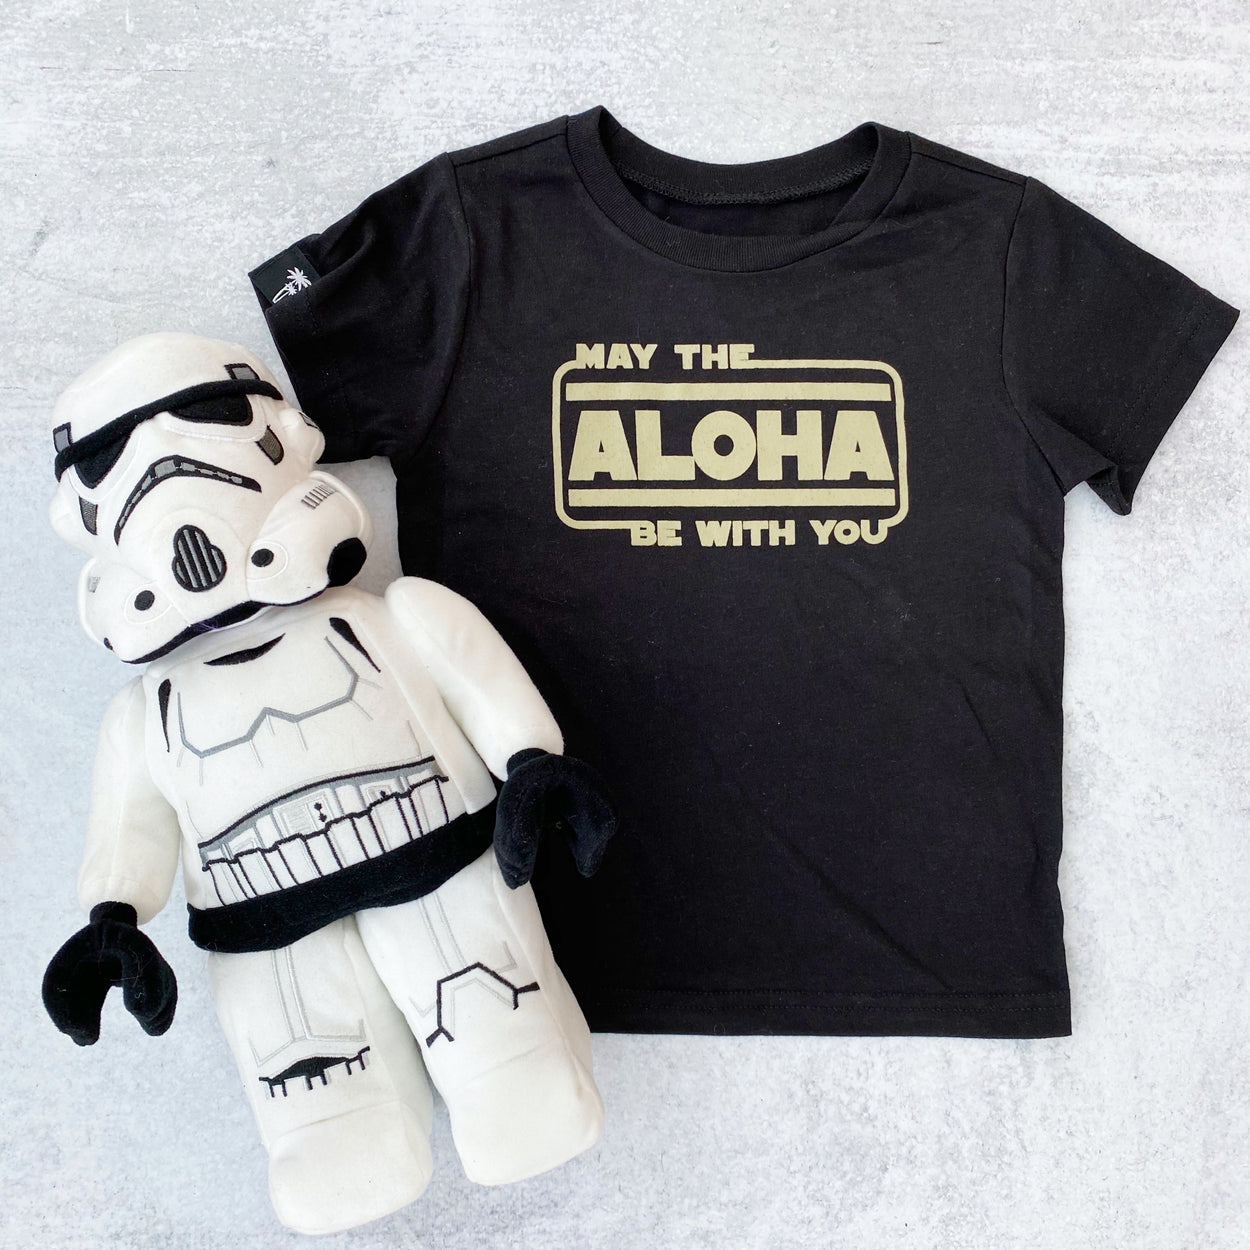 May the Aloha be with you